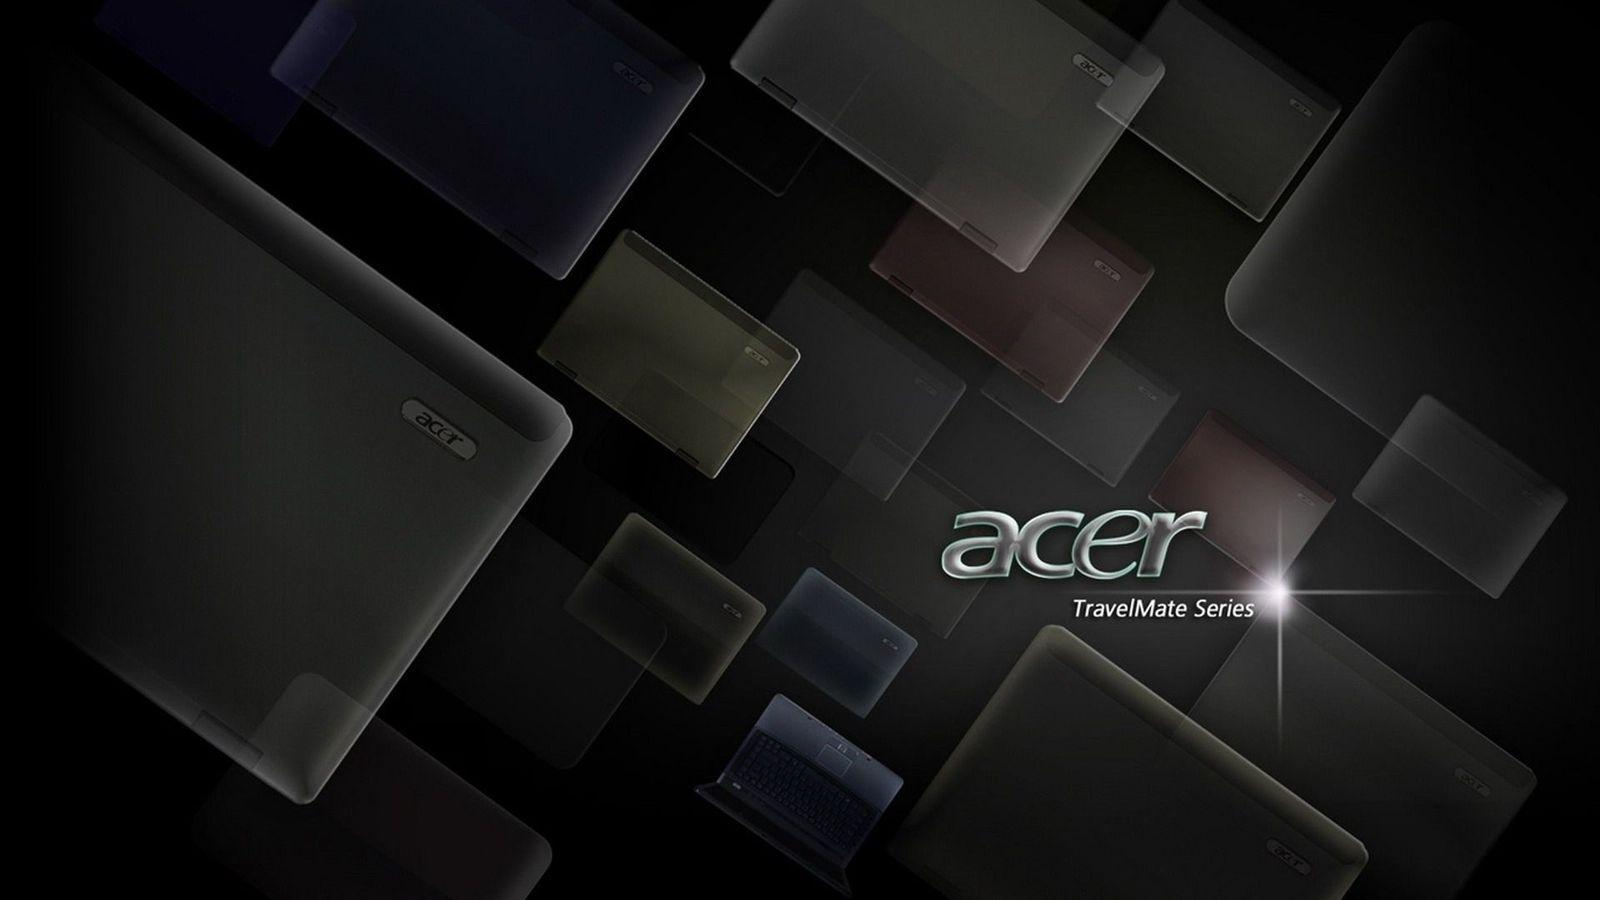 Acer Wallpapers 1600 by 900